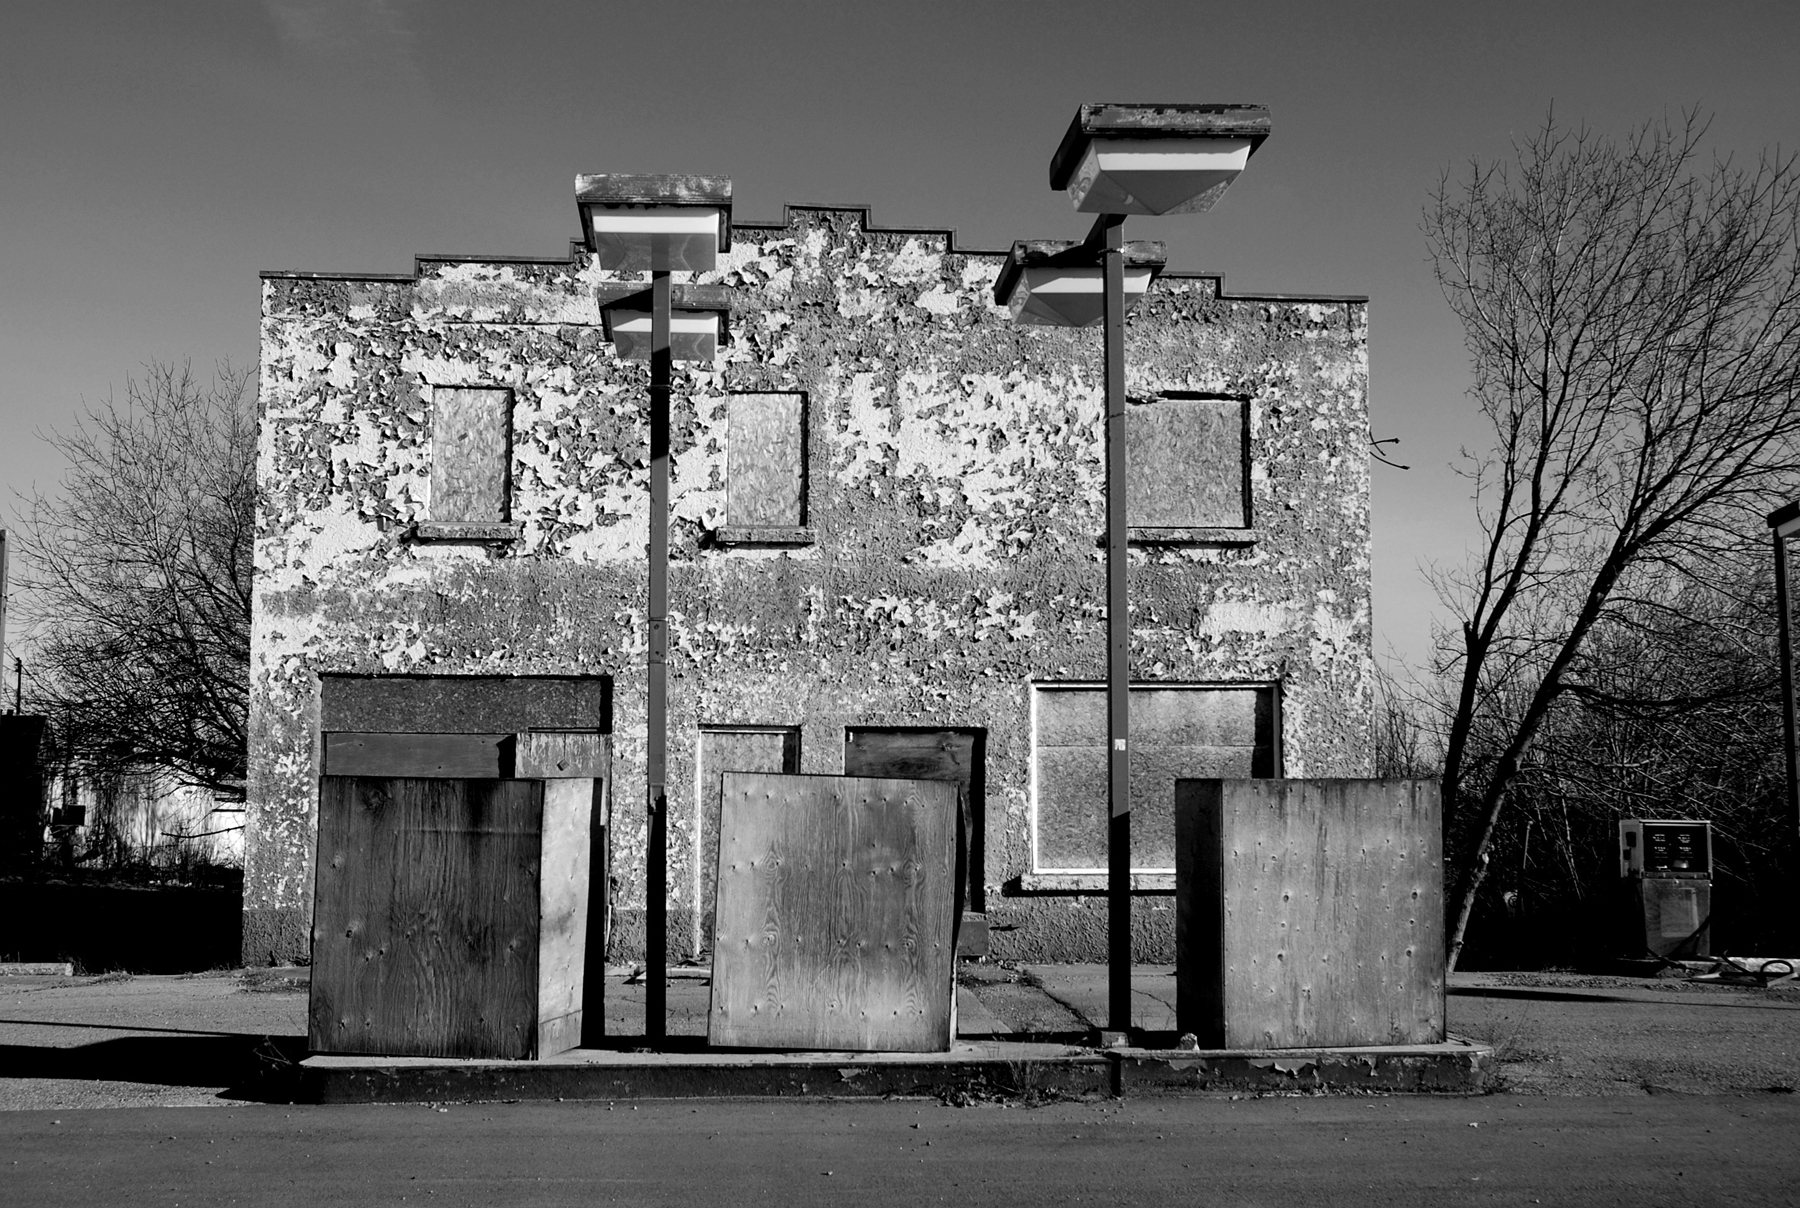 Gas Station, Ontario (2012)